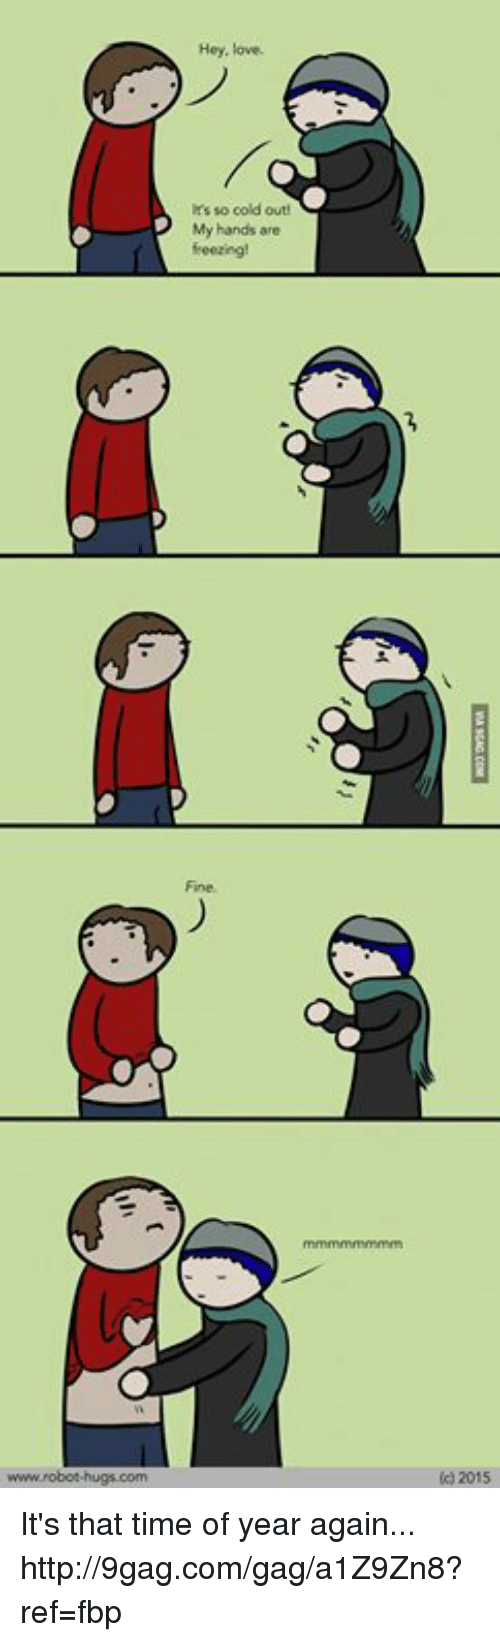 so cold: Hey, love.  hrs so cold out  My hands are  (c) 2015 It's that time of year again... http://9gag.com/gag/a1Z9Zn8?ref=fbp